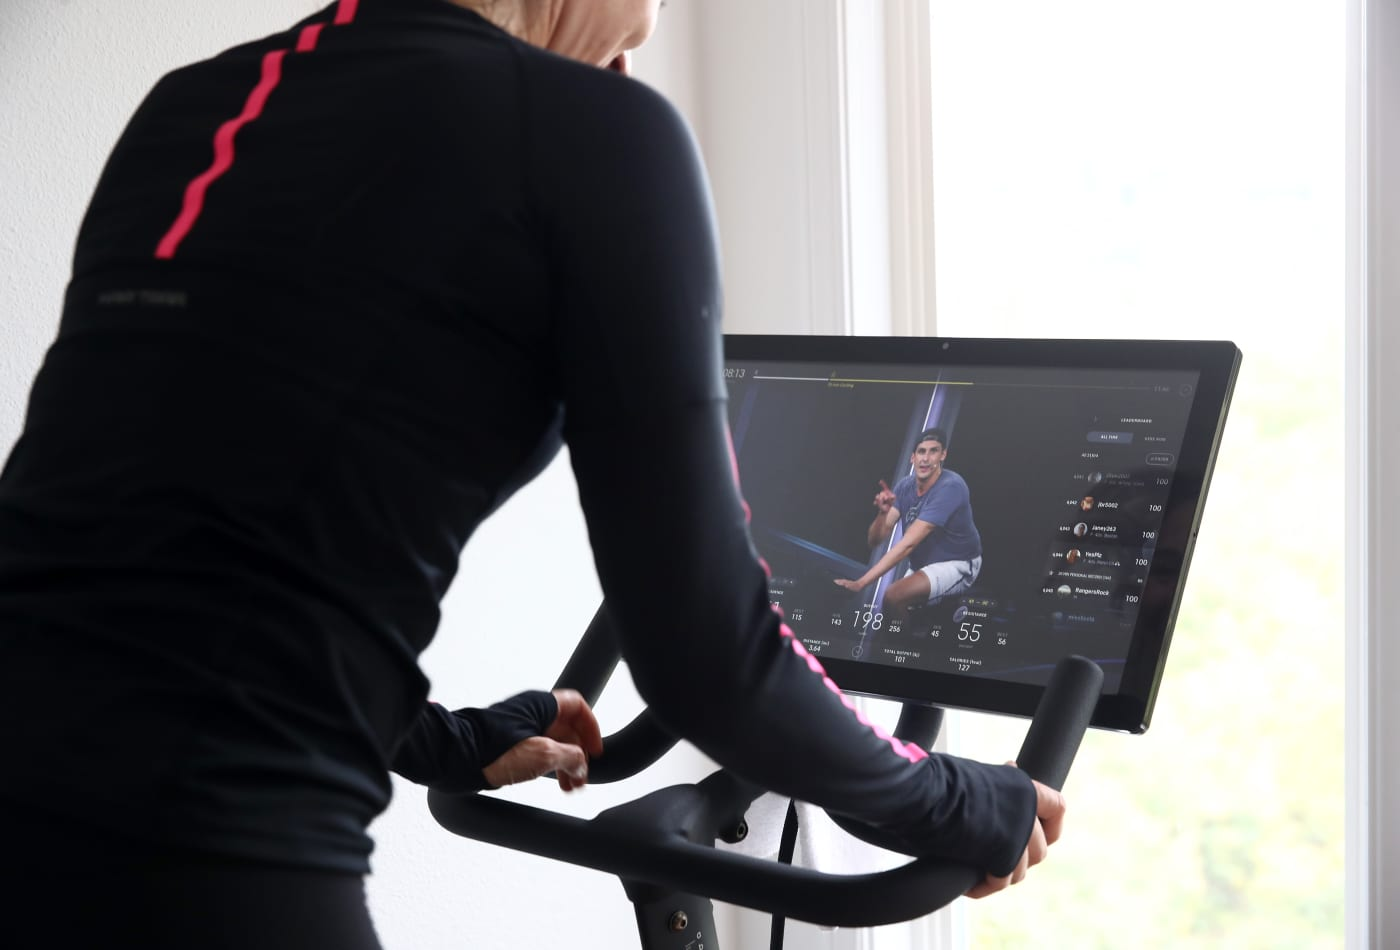 Peloton shares slip premarket on news Apple is planning exercise video subscription service